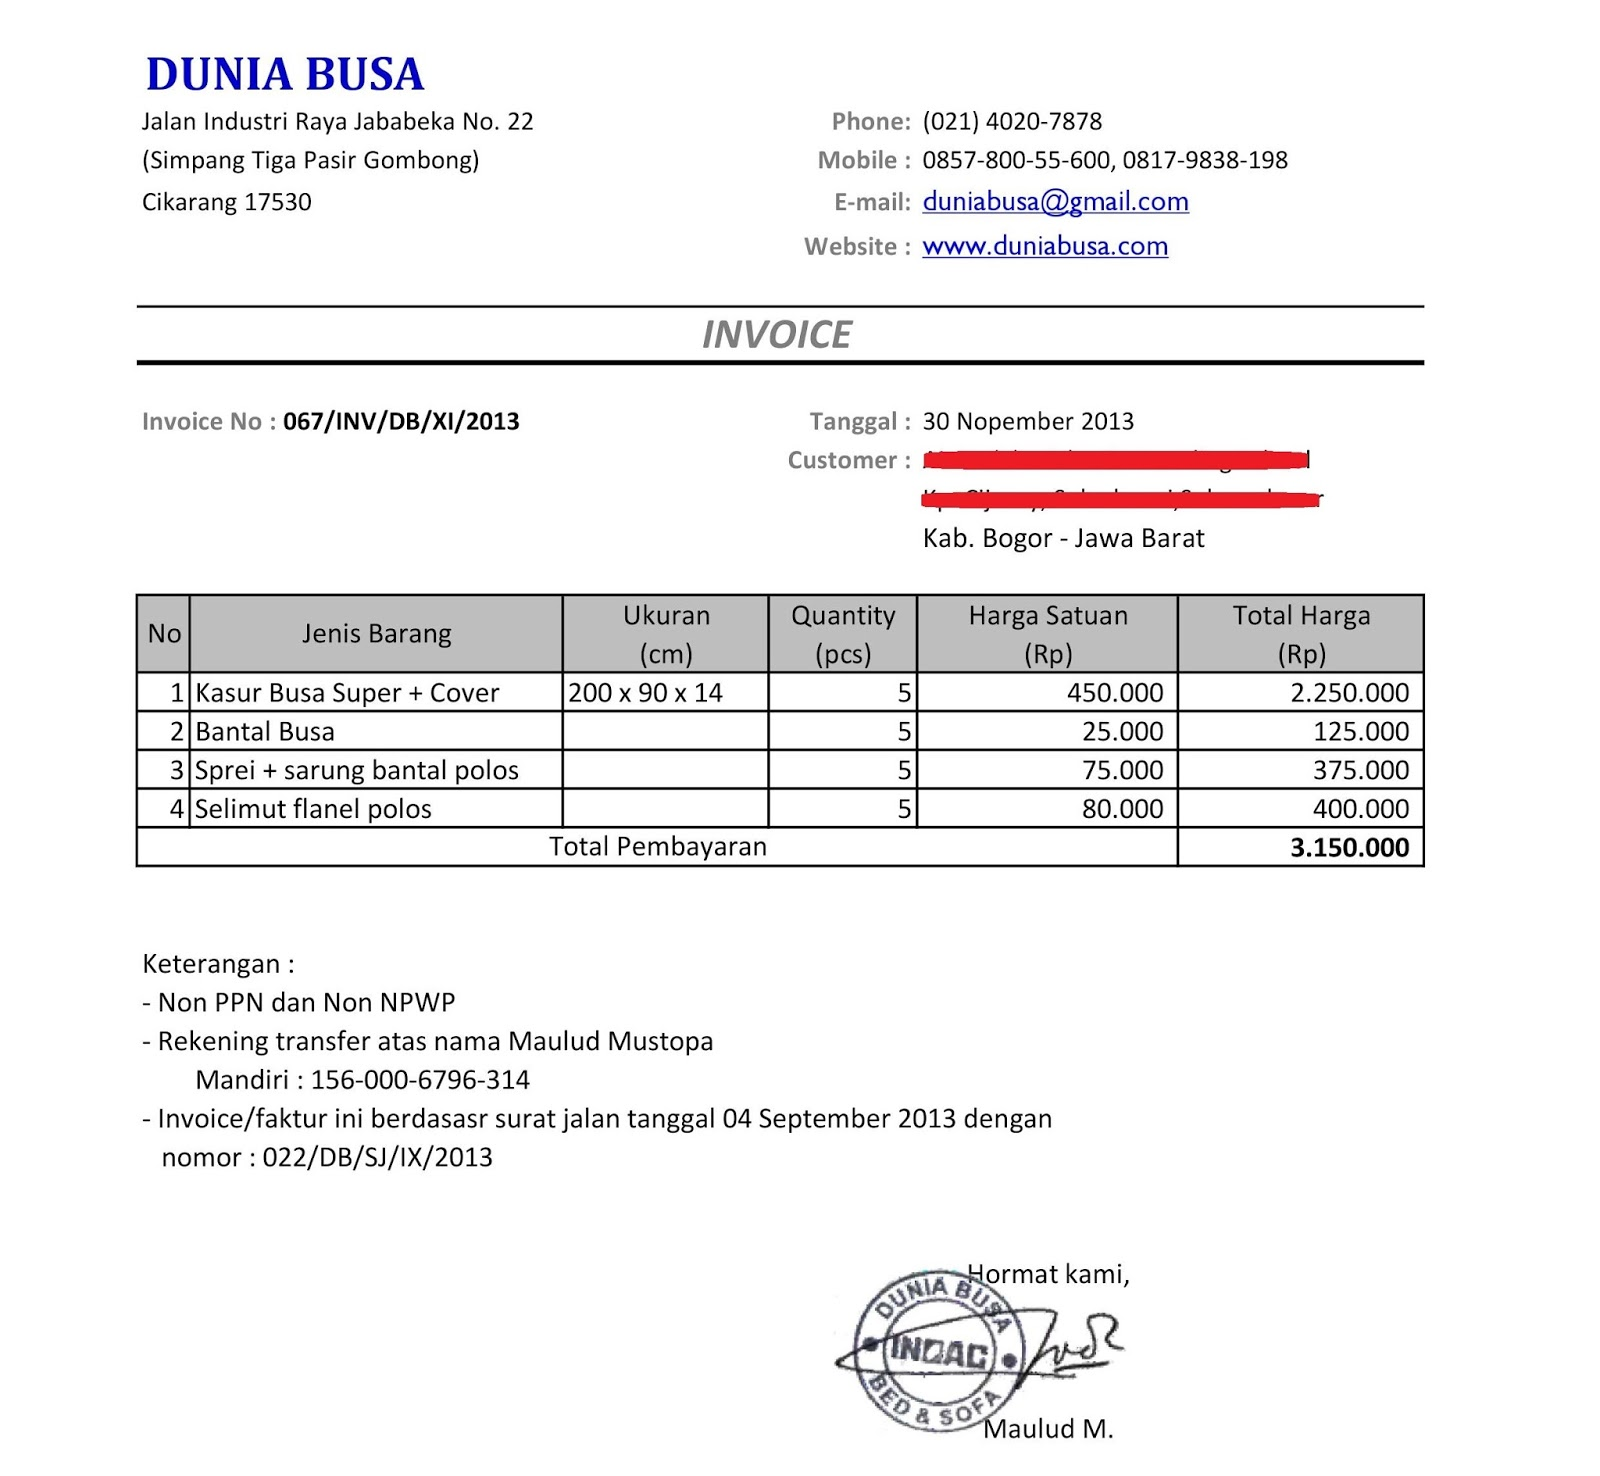 Usdgus  Unique Free Invoice Online  Create Invoice Online  Invoice Template  With Goodlooking Contoh Format Invoice Atau Surat Tagihan  Brankas Arsip  Free Invoice Online With Cool Receipt For Purchase Of Car Also Epson Receipt Printer Price In Addition Shop Receipt Maker And Format For Receipt As Well As Printable Receipt For Payment Additionally Best Thermal Receipt Printer From Sklepco With Usdgus  Goodlooking Free Invoice Online  Create Invoice Online  Invoice Template  With Cool Contoh Format Invoice Atau Surat Tagihan  Brankas Arsip  Free Invoice Online And Unique Receipt For Purchase Of Car Also Epson Receipt Printer Price In Addition Shop Receipt Maker From Sklepco